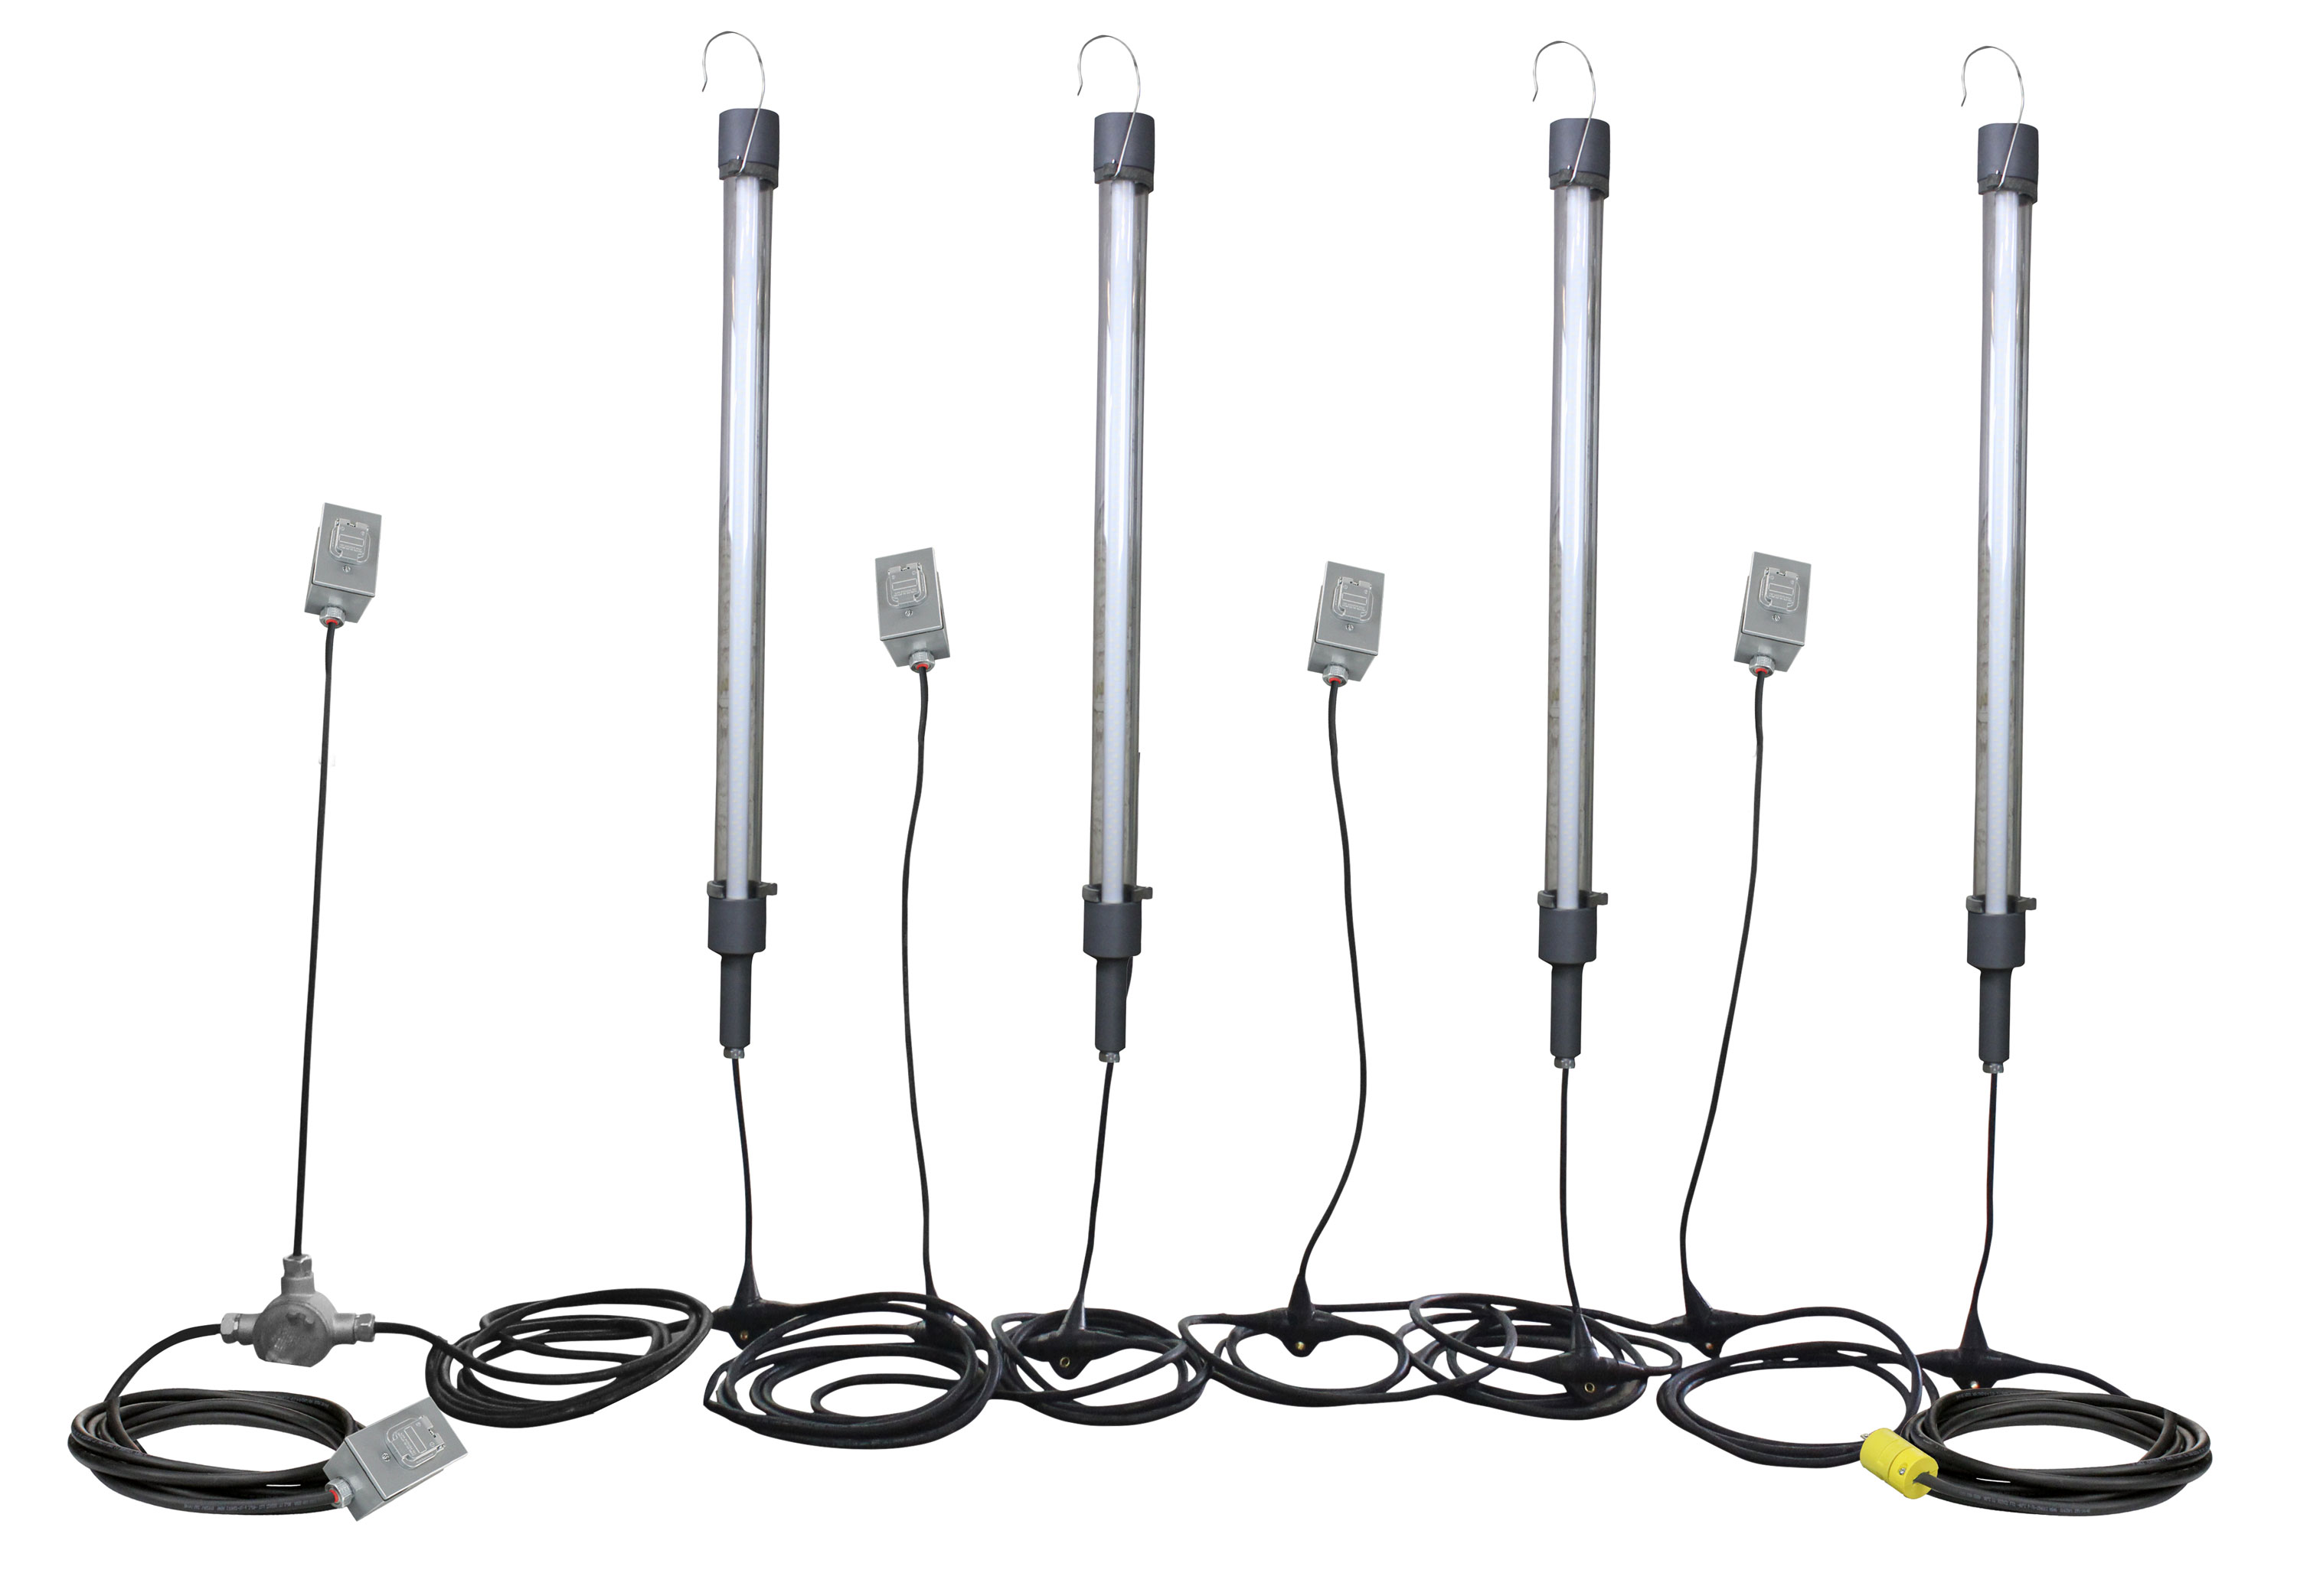 Larson Electronics Releases 80 Temporary Led String Light Set With Four Tool Taps